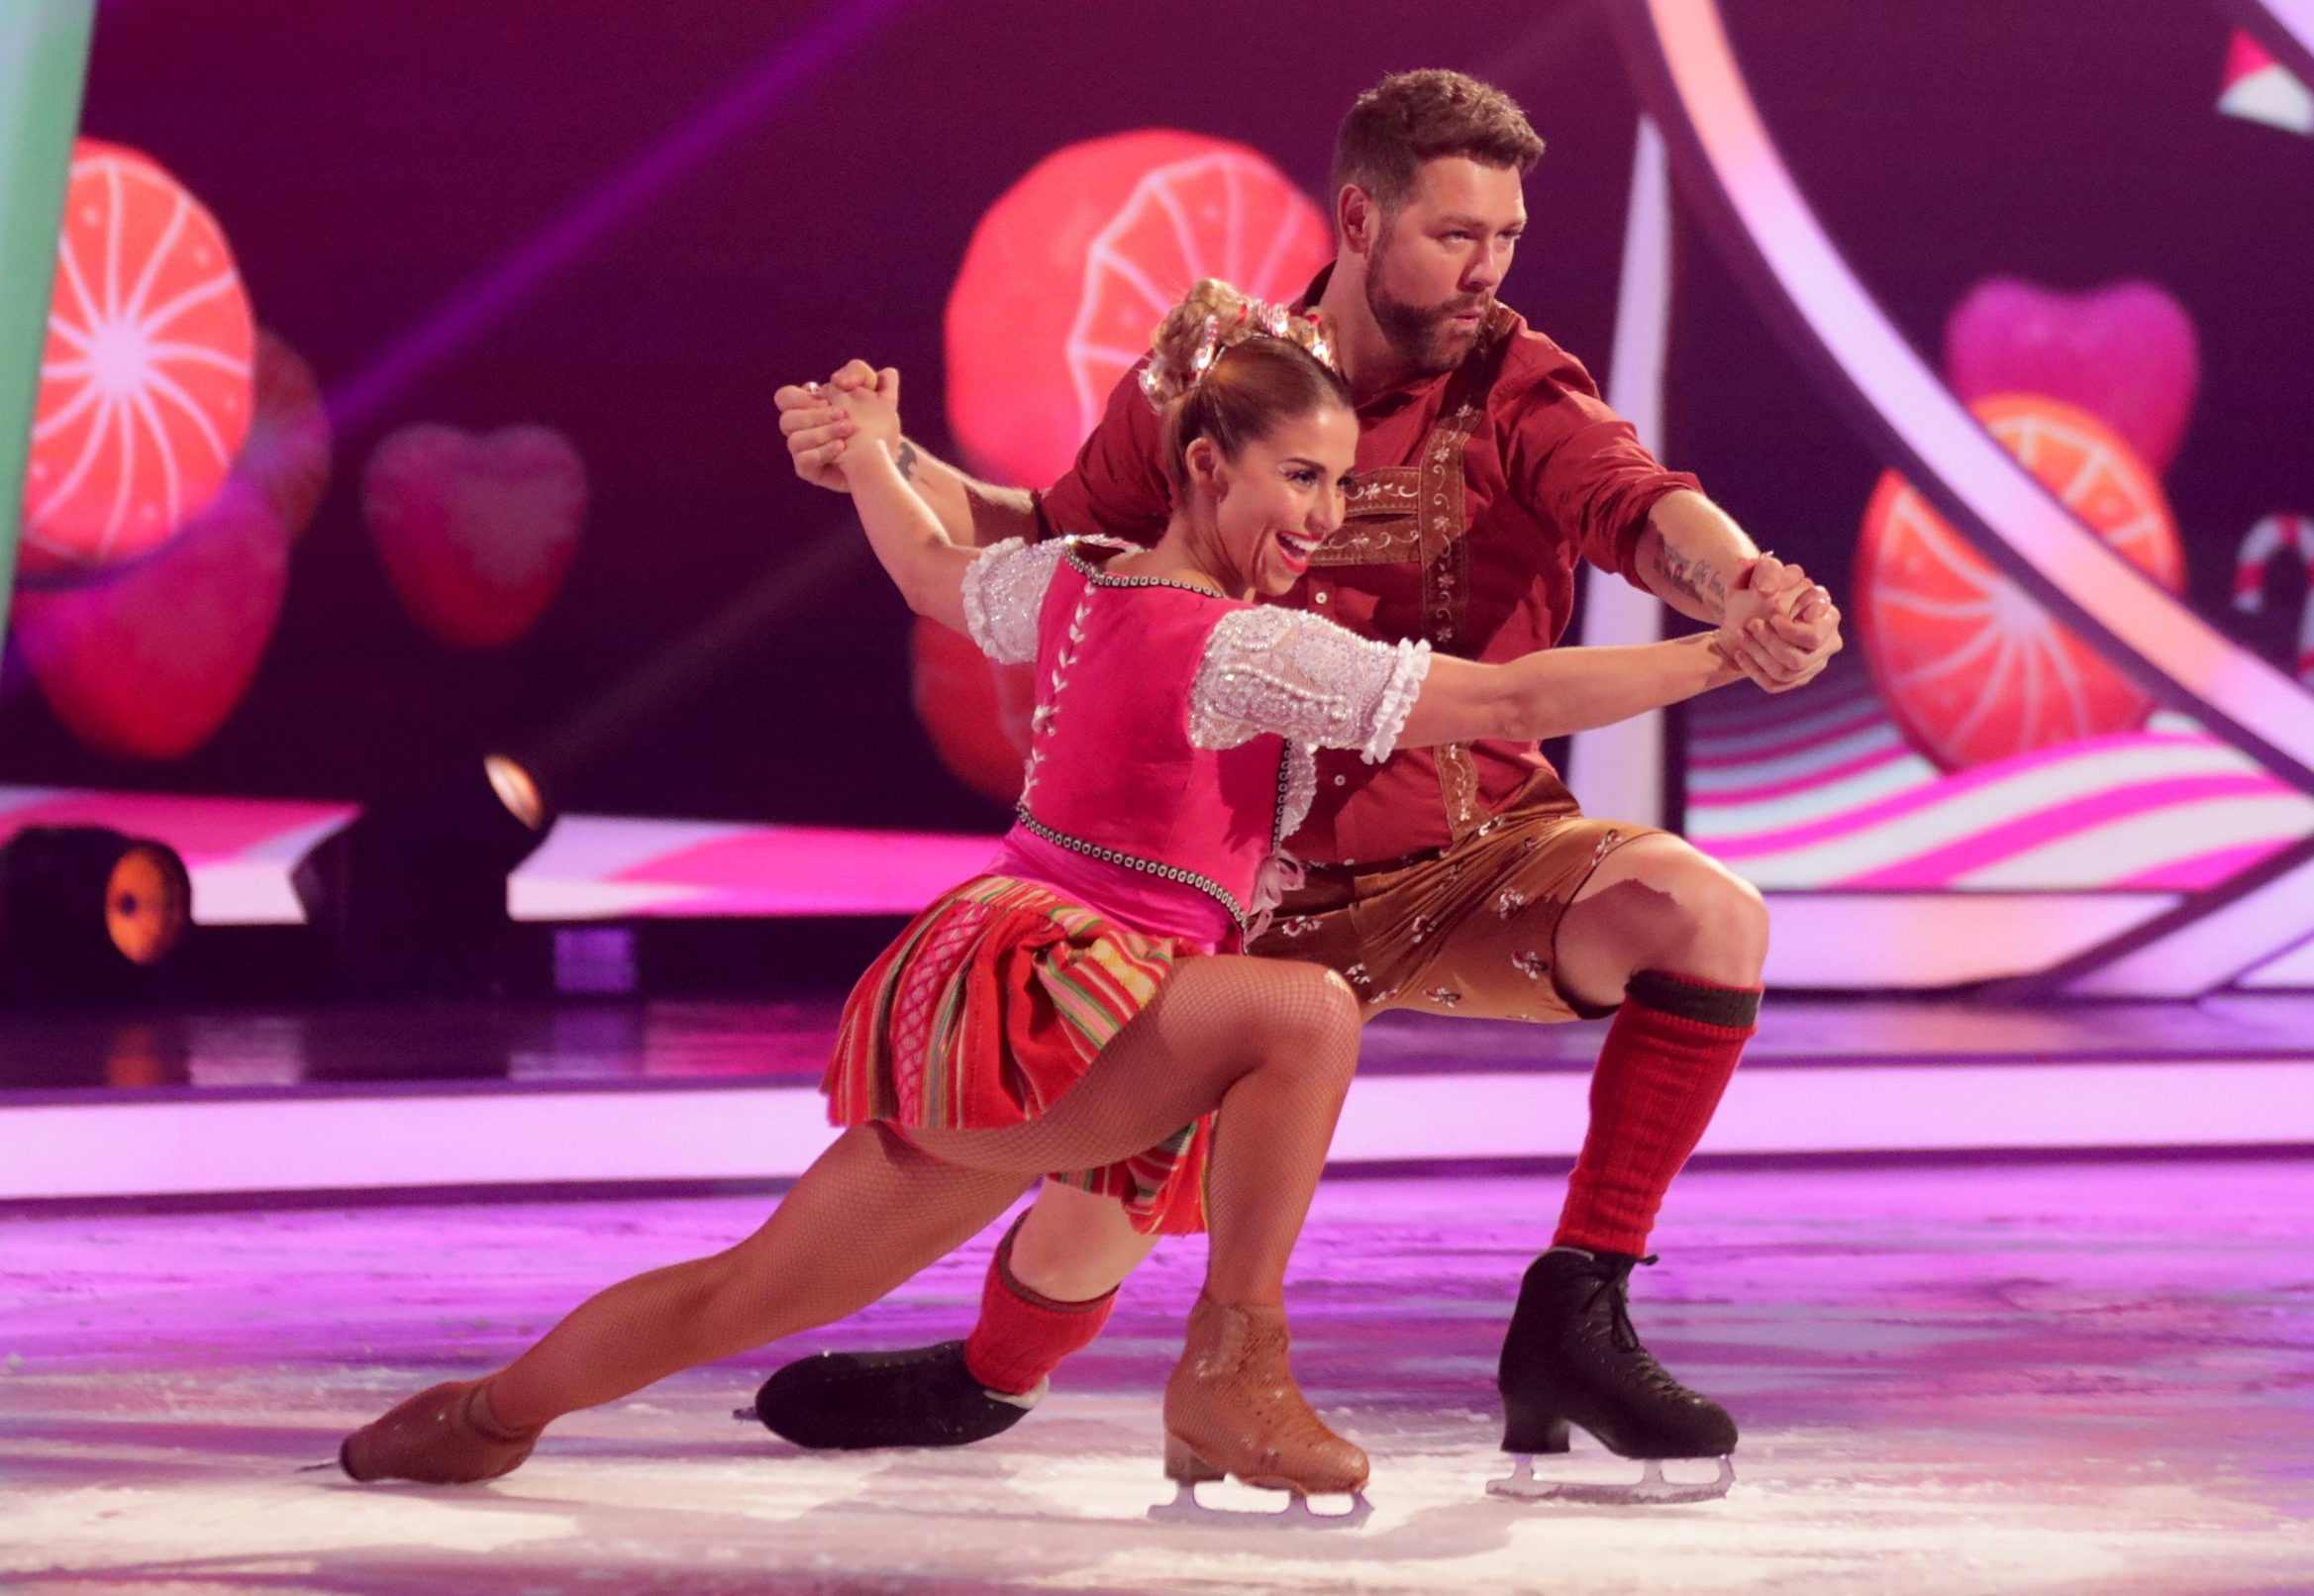 Editorial use only Mandatory Credit: Photo by Matt Frost/ITV/REX (10080492ay) Brian McFadden and Alex Murphy 'Dancing on Ice' TV show, Series 11, Episode 5, Hertfordshire, UK - 03 Feb 2019